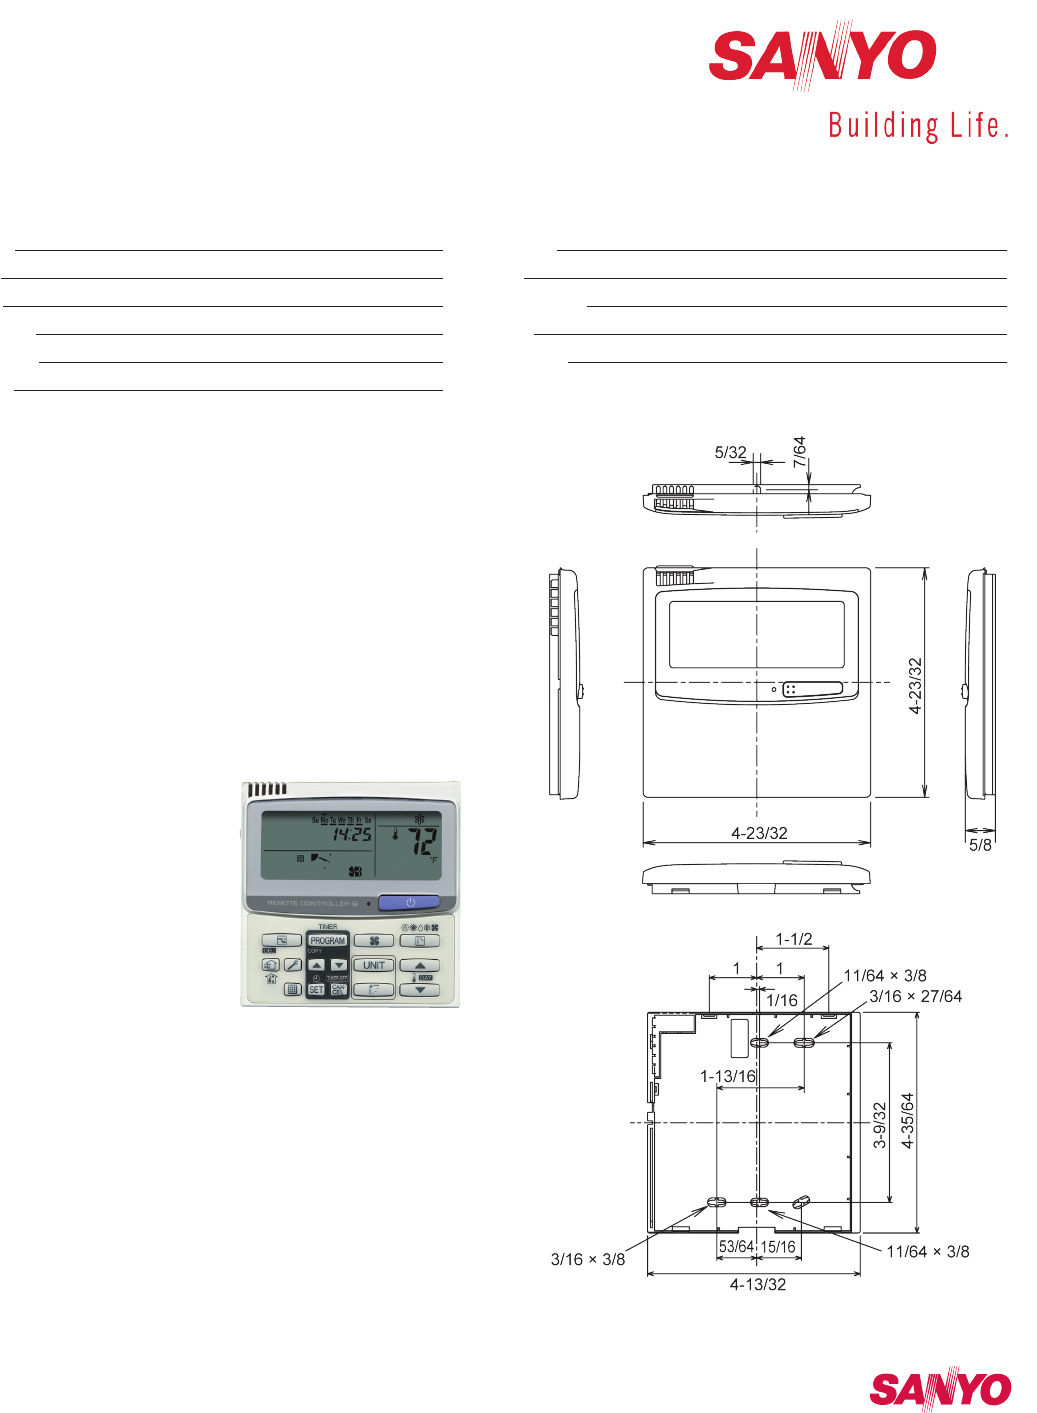 f5346a67 ccb0 437e b260 d923e8cd2baa bg1 sanyo thermostat thermostat manual Sanyo TV Back Diagram at reclaimingppi.co